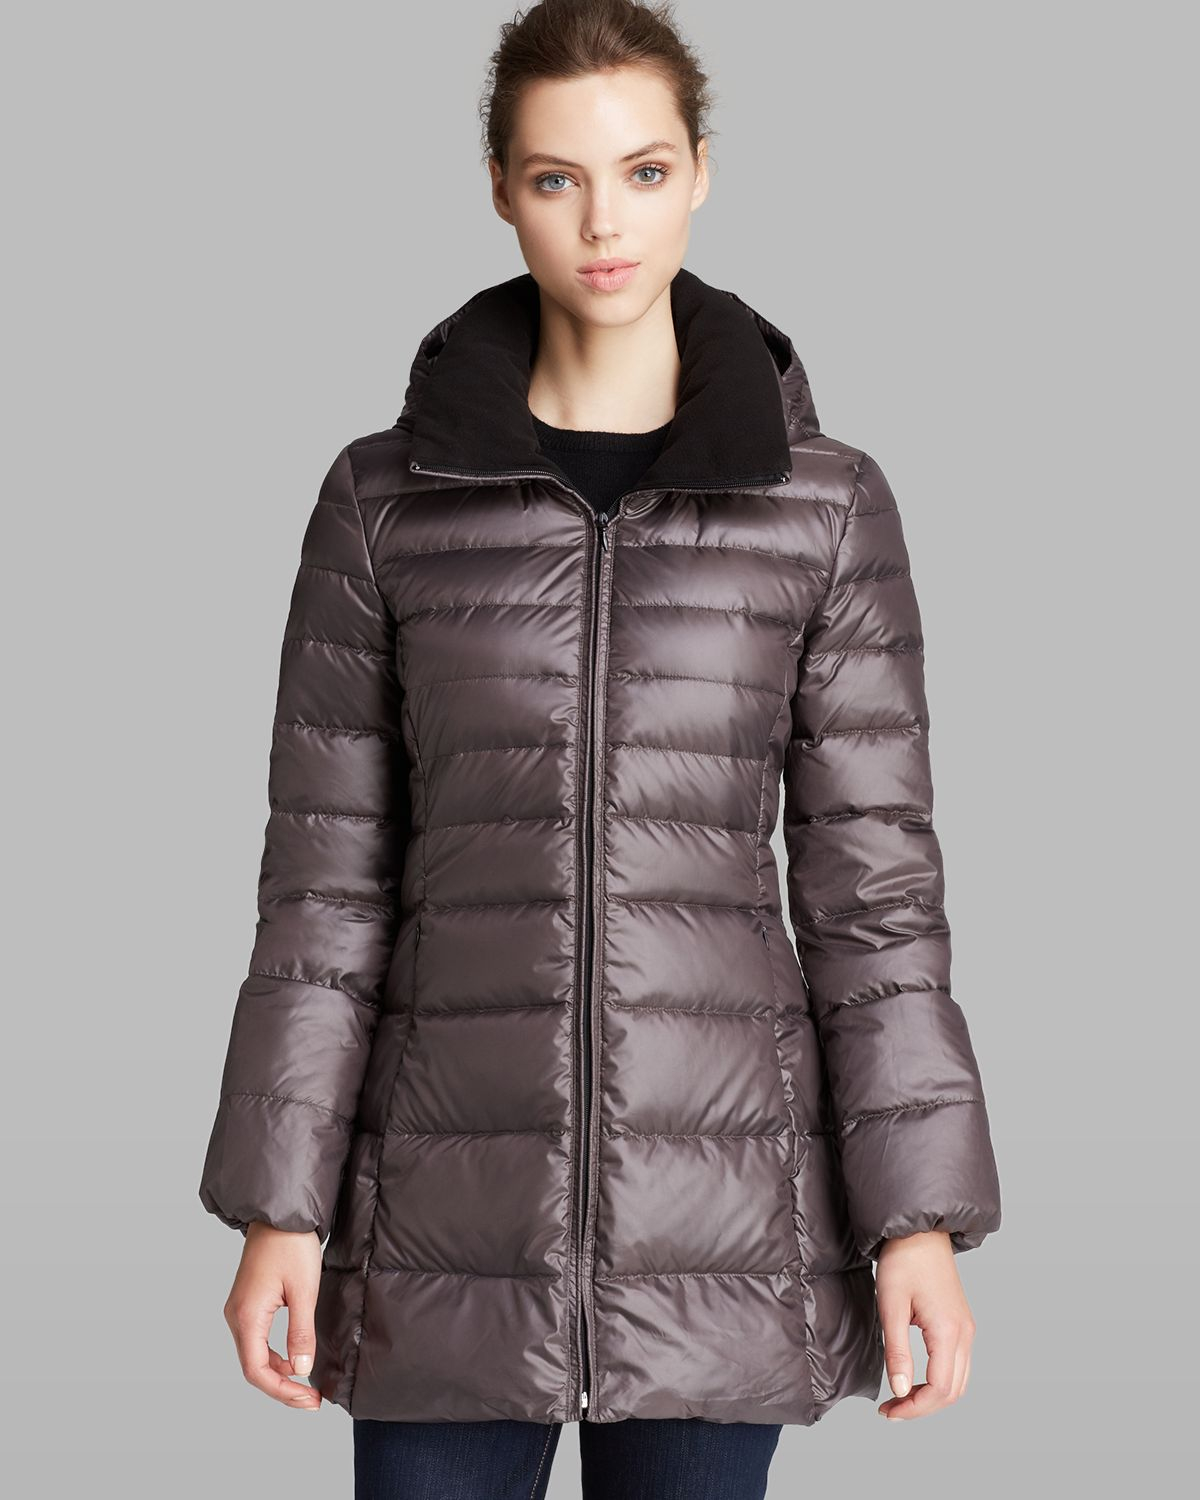 Normal New York Clothing Women Winter